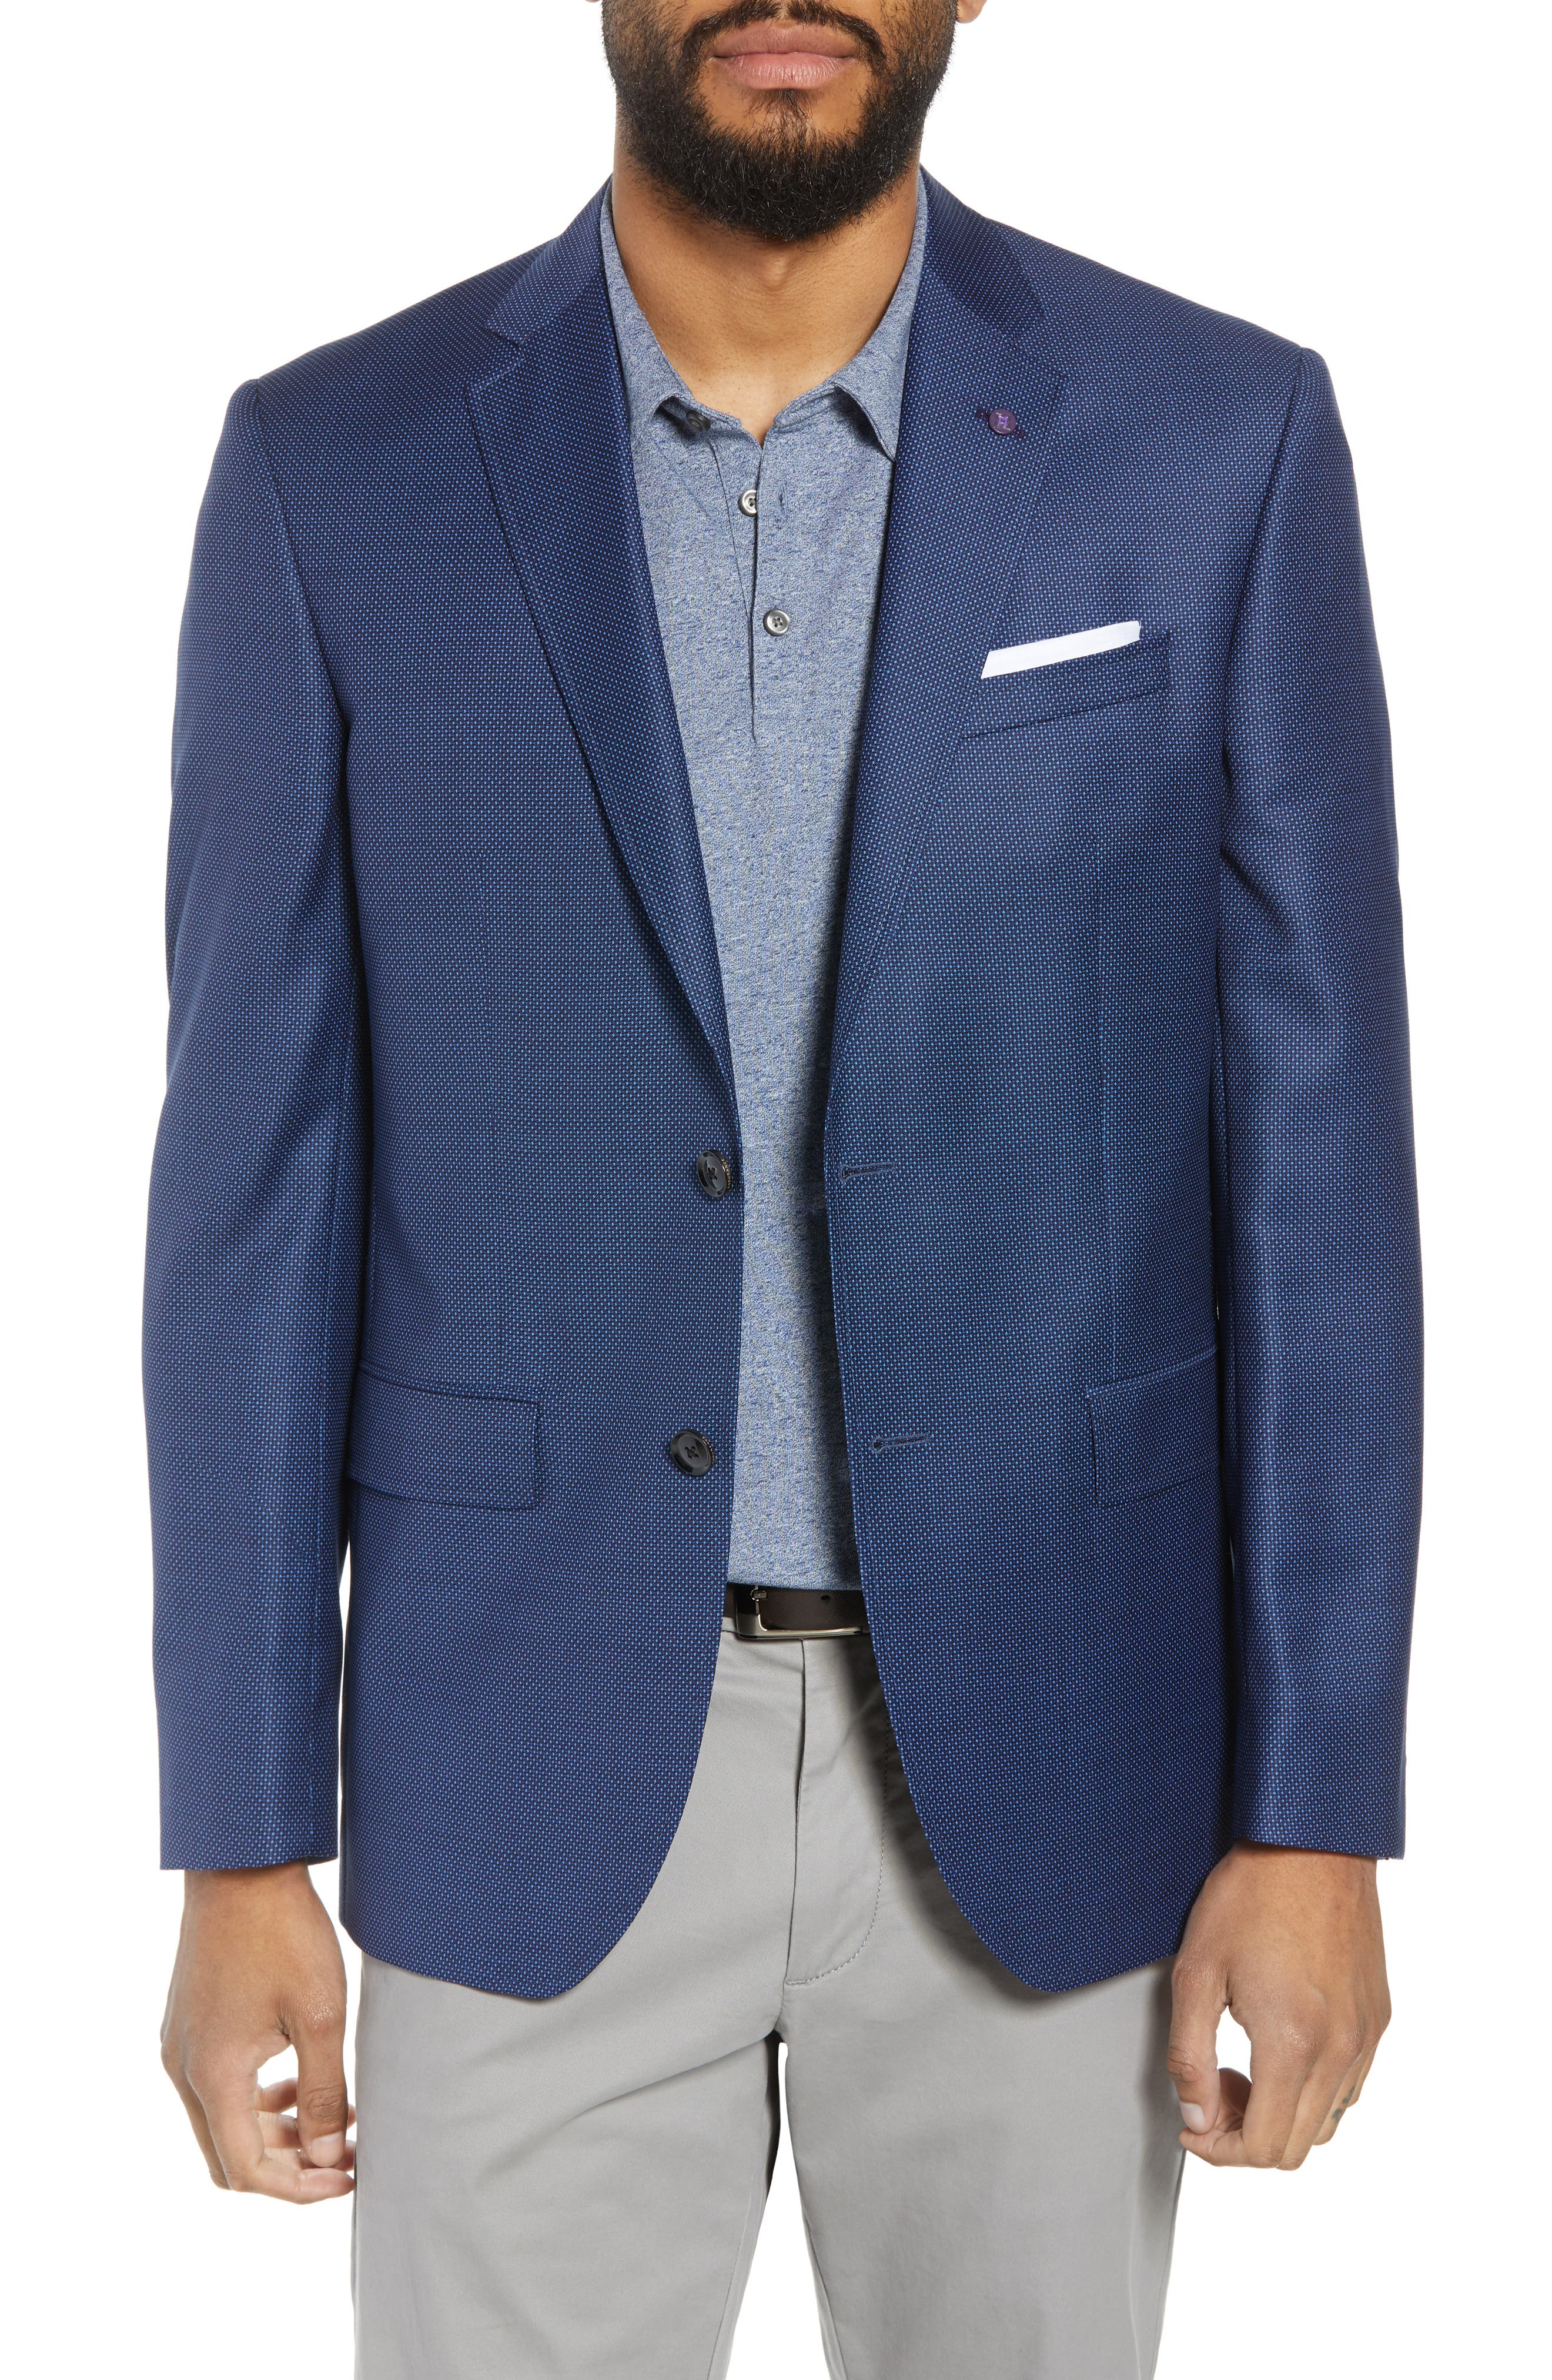 Jay Trim Fit Microdot Wool Sport Coat,                             Main thumbnail 1, color,                             Blue